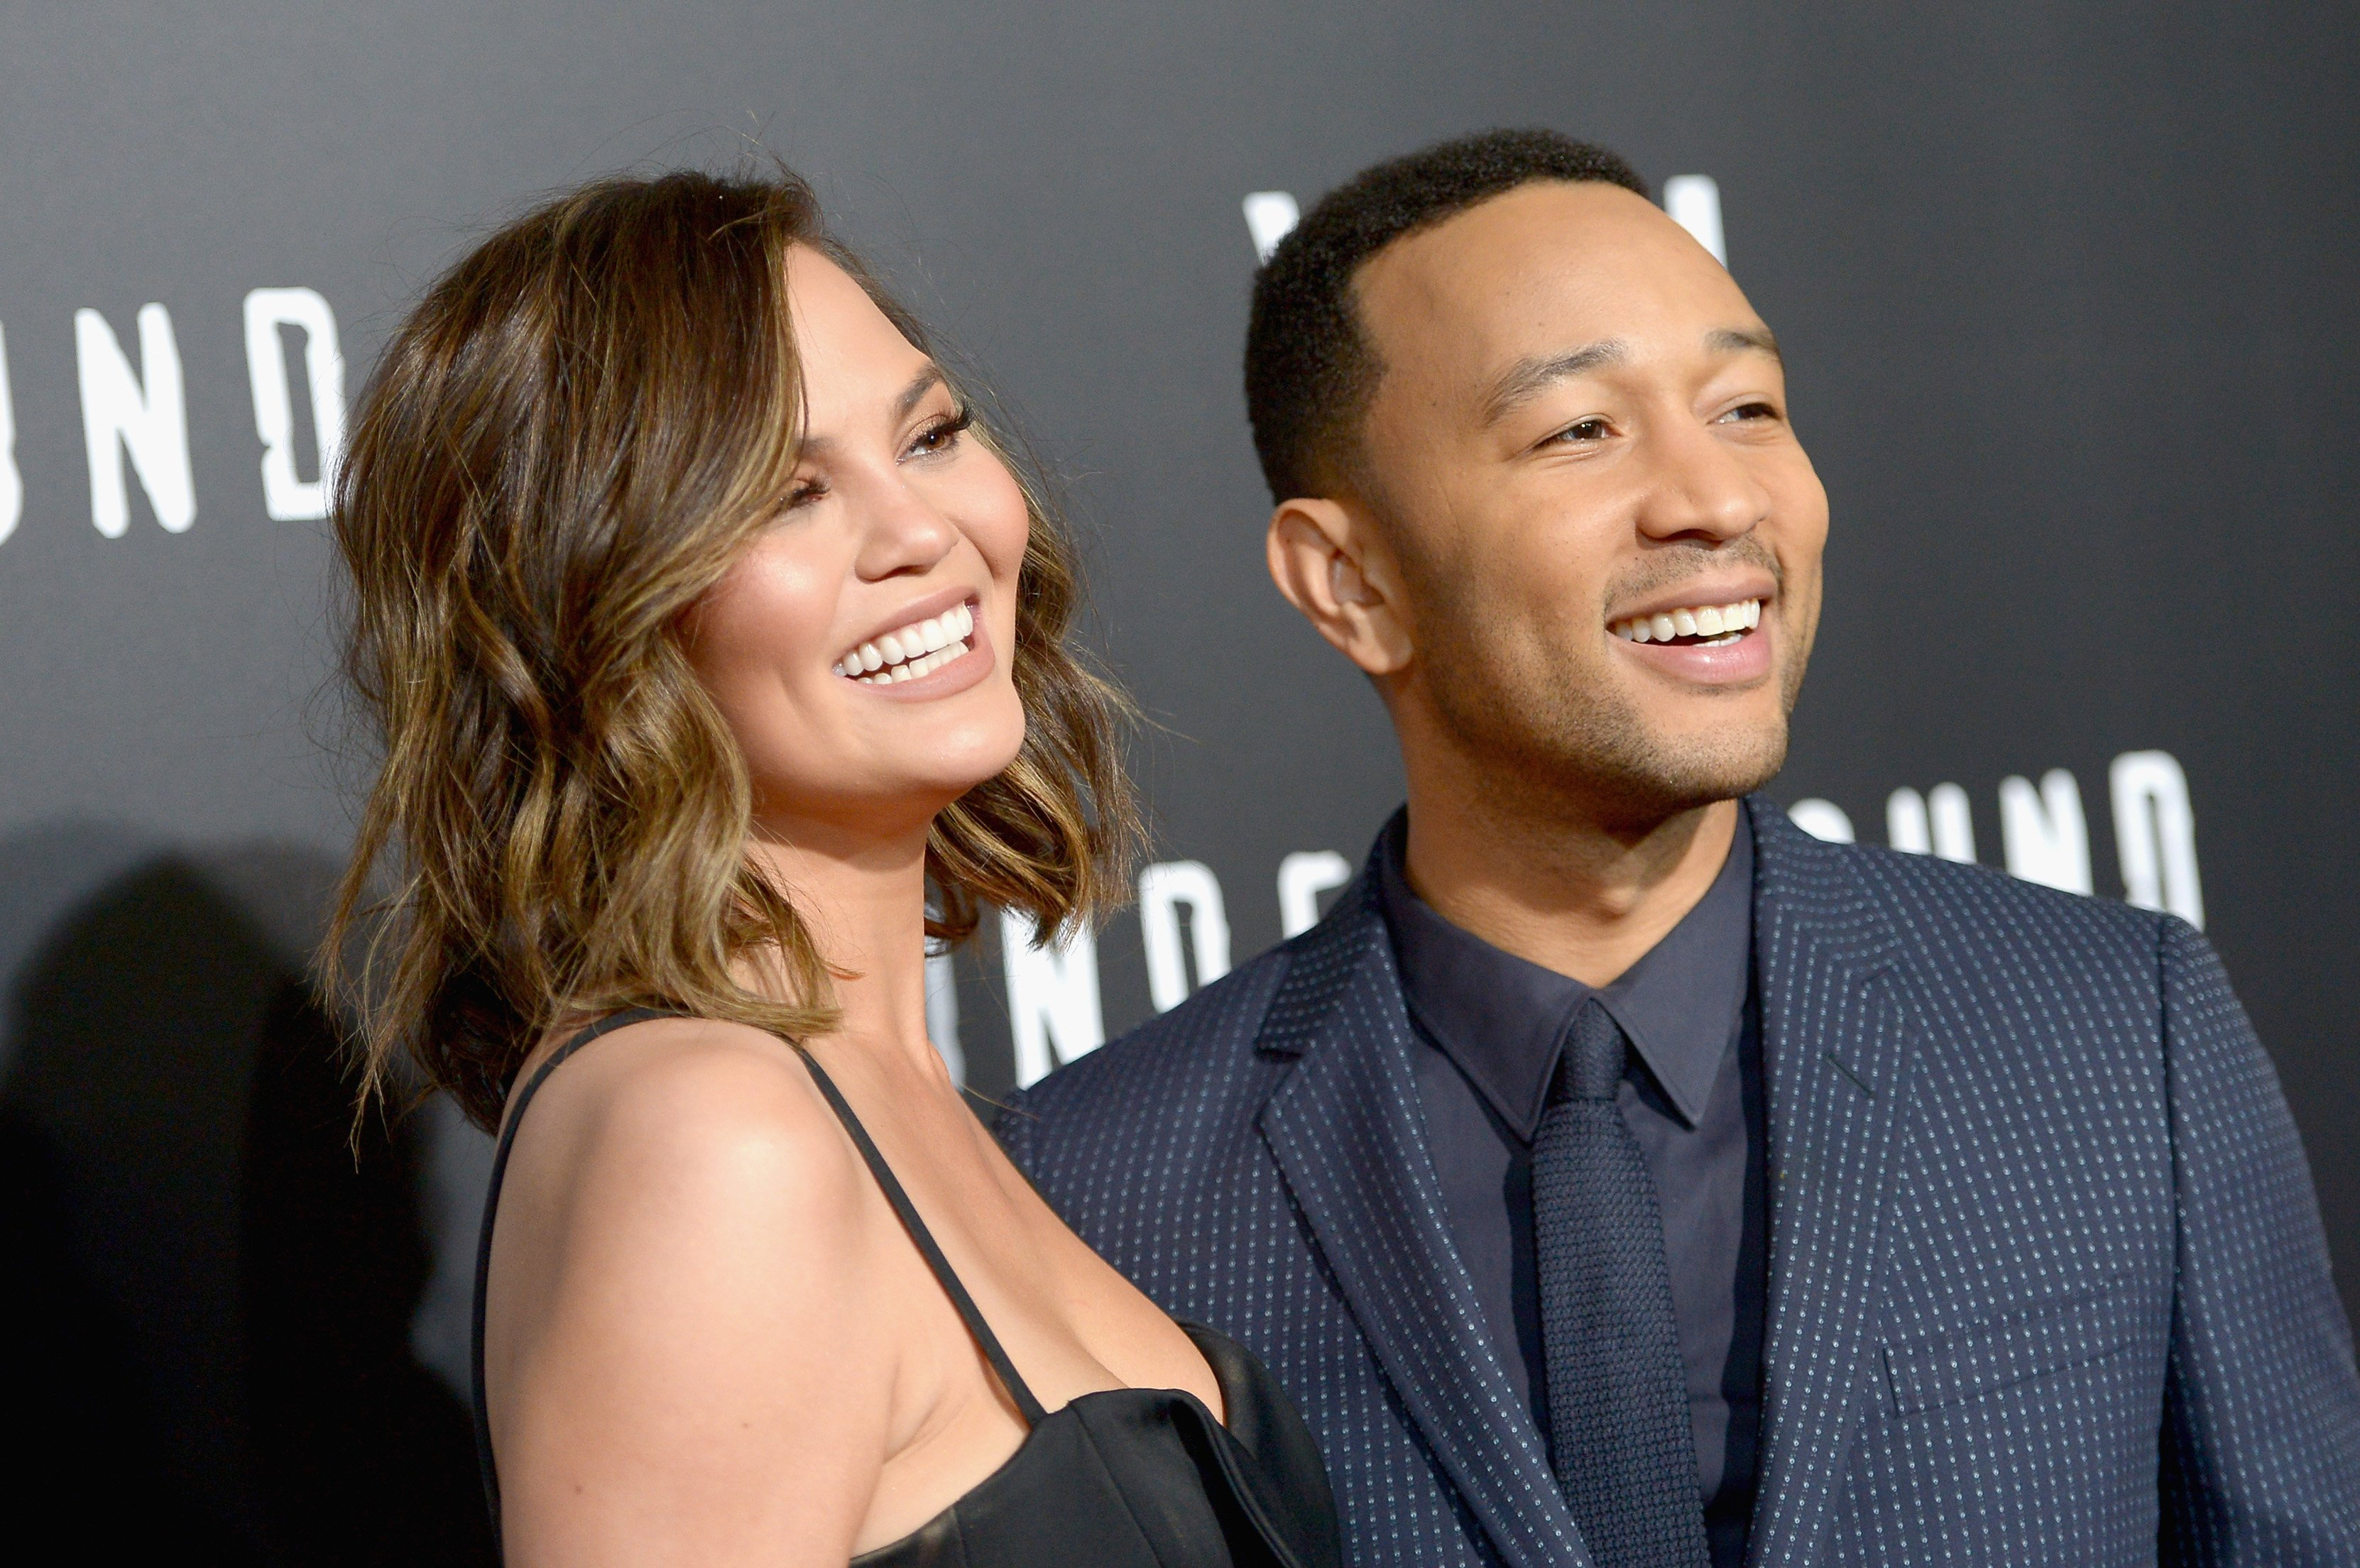 """Chrissy Teigen and John Legend attending WGN America's """"Underground"""" Season Two Premiere Screening at Regency Village Theatre on March 1, 2017 in California.   Photo by Charley Gallay/Getty Images"""